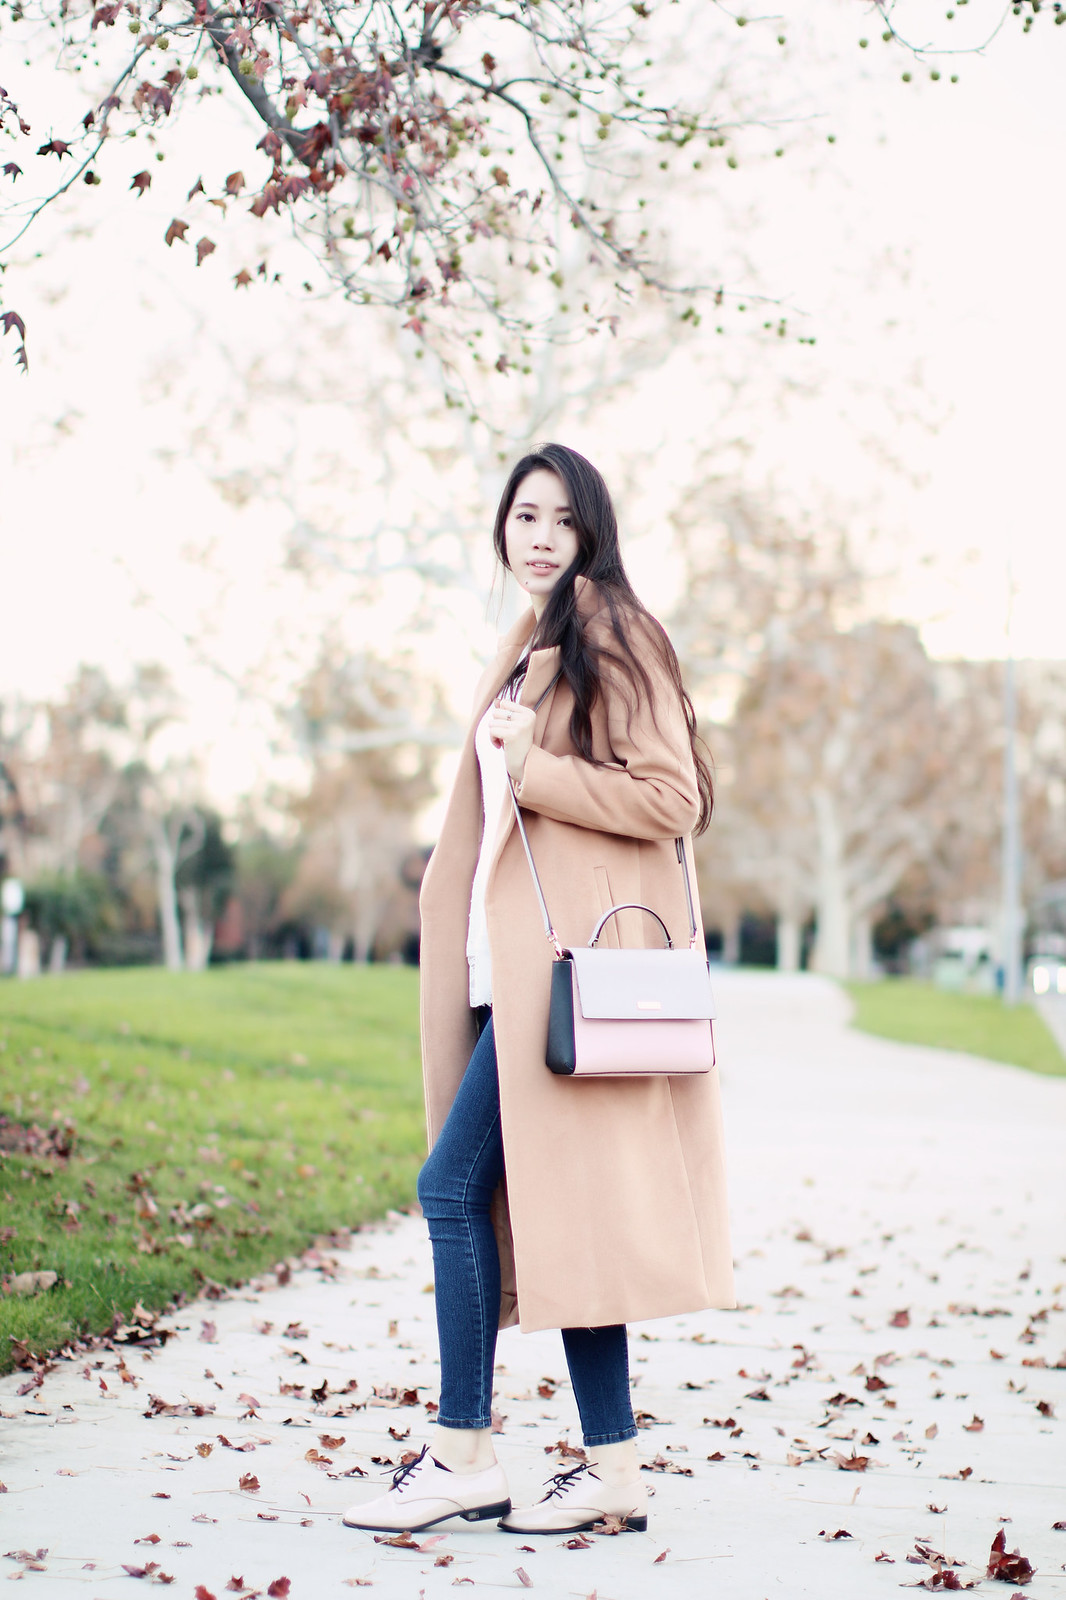 1419-ootd-fashion-fall-autumn-camel-coat-clothestoyouuu-elizabeeetht-chic-classic-timeless-koreanfashion